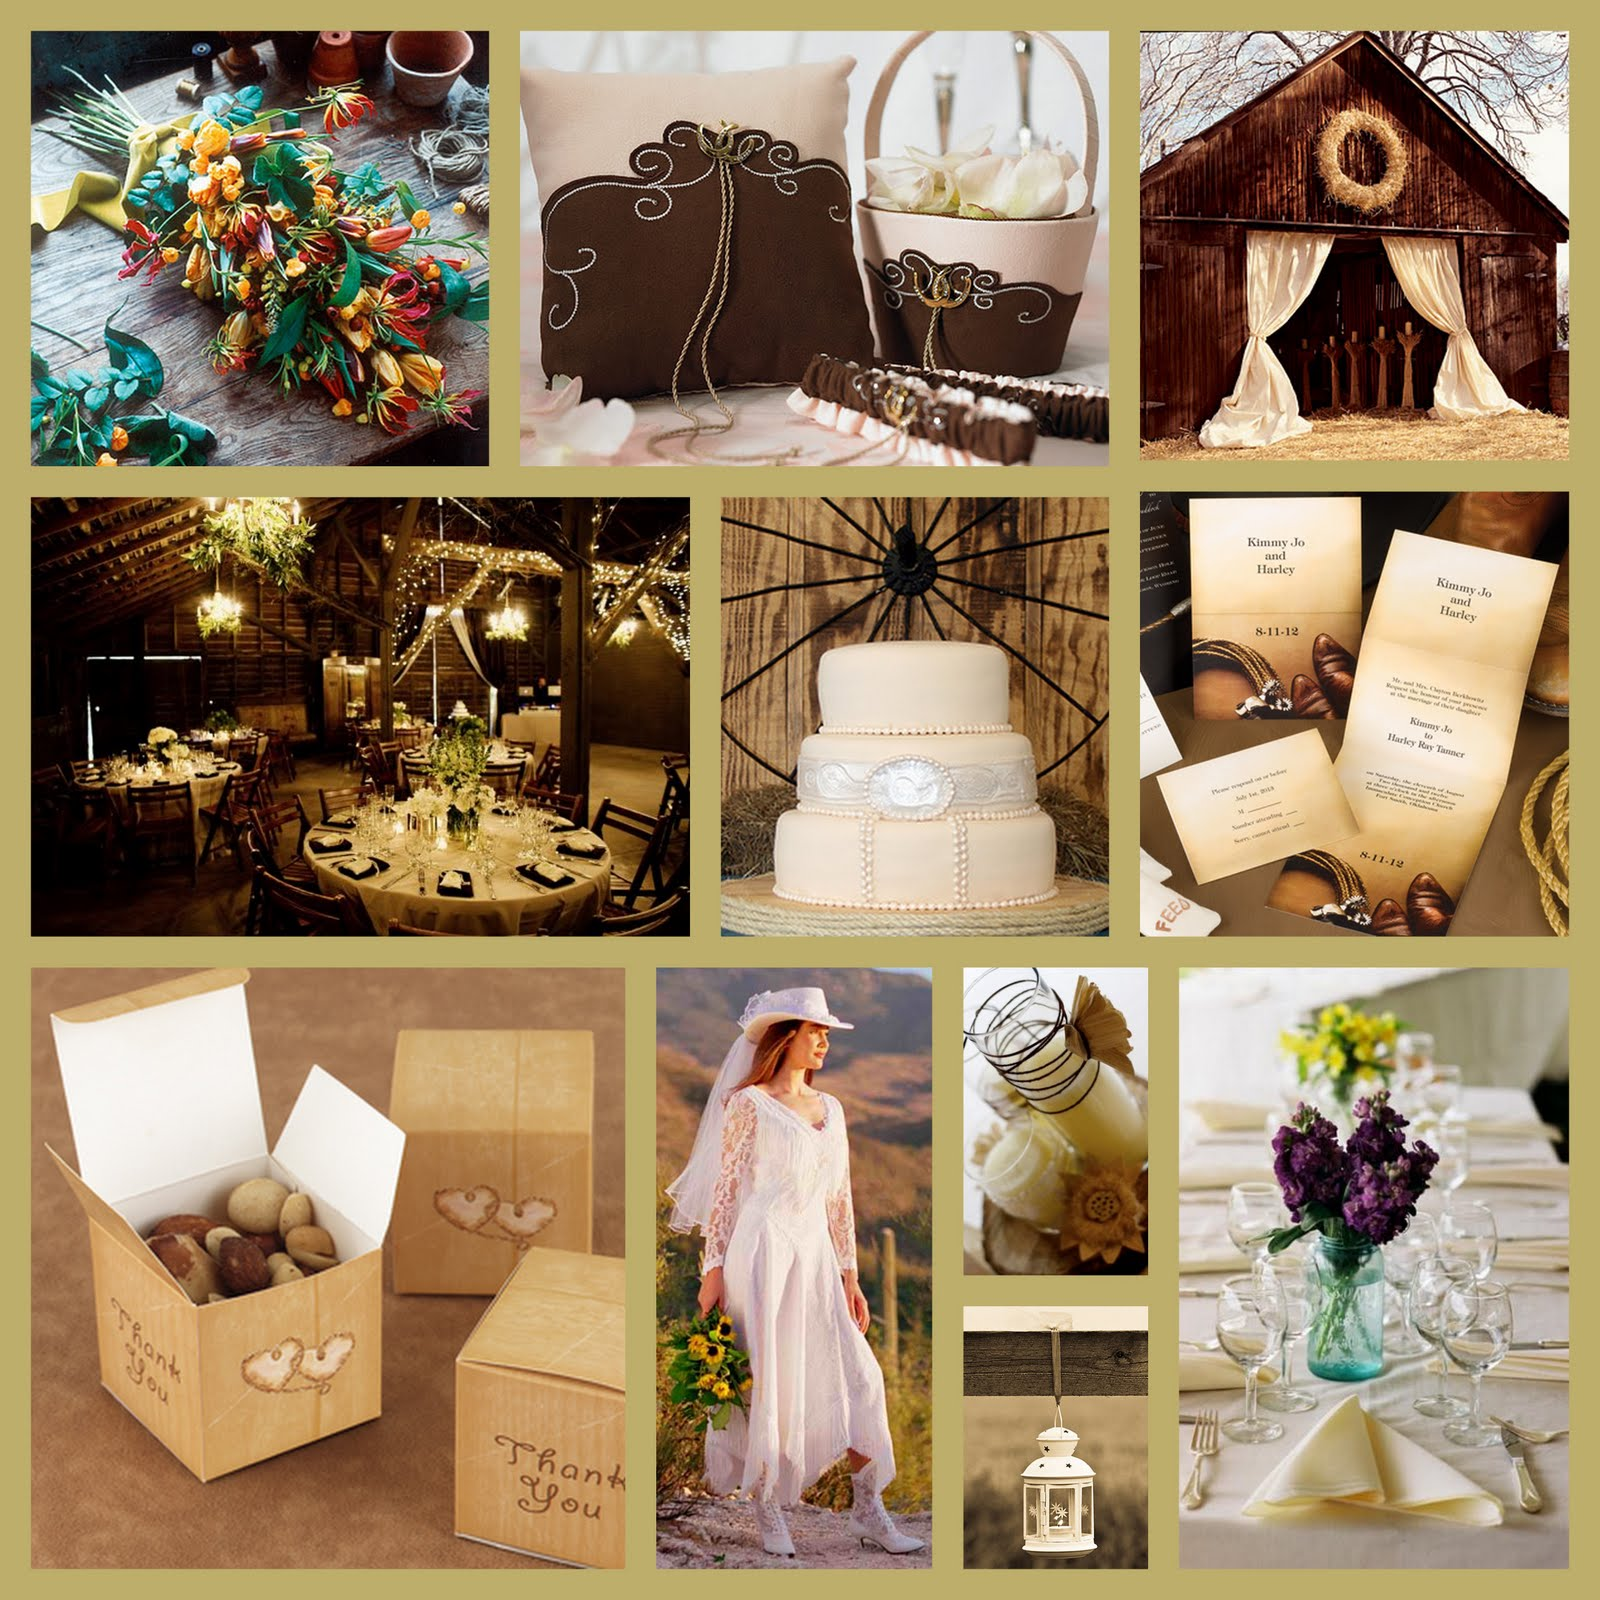 Wedding Theme Ideas: Rustic Wedding Theme Ideas